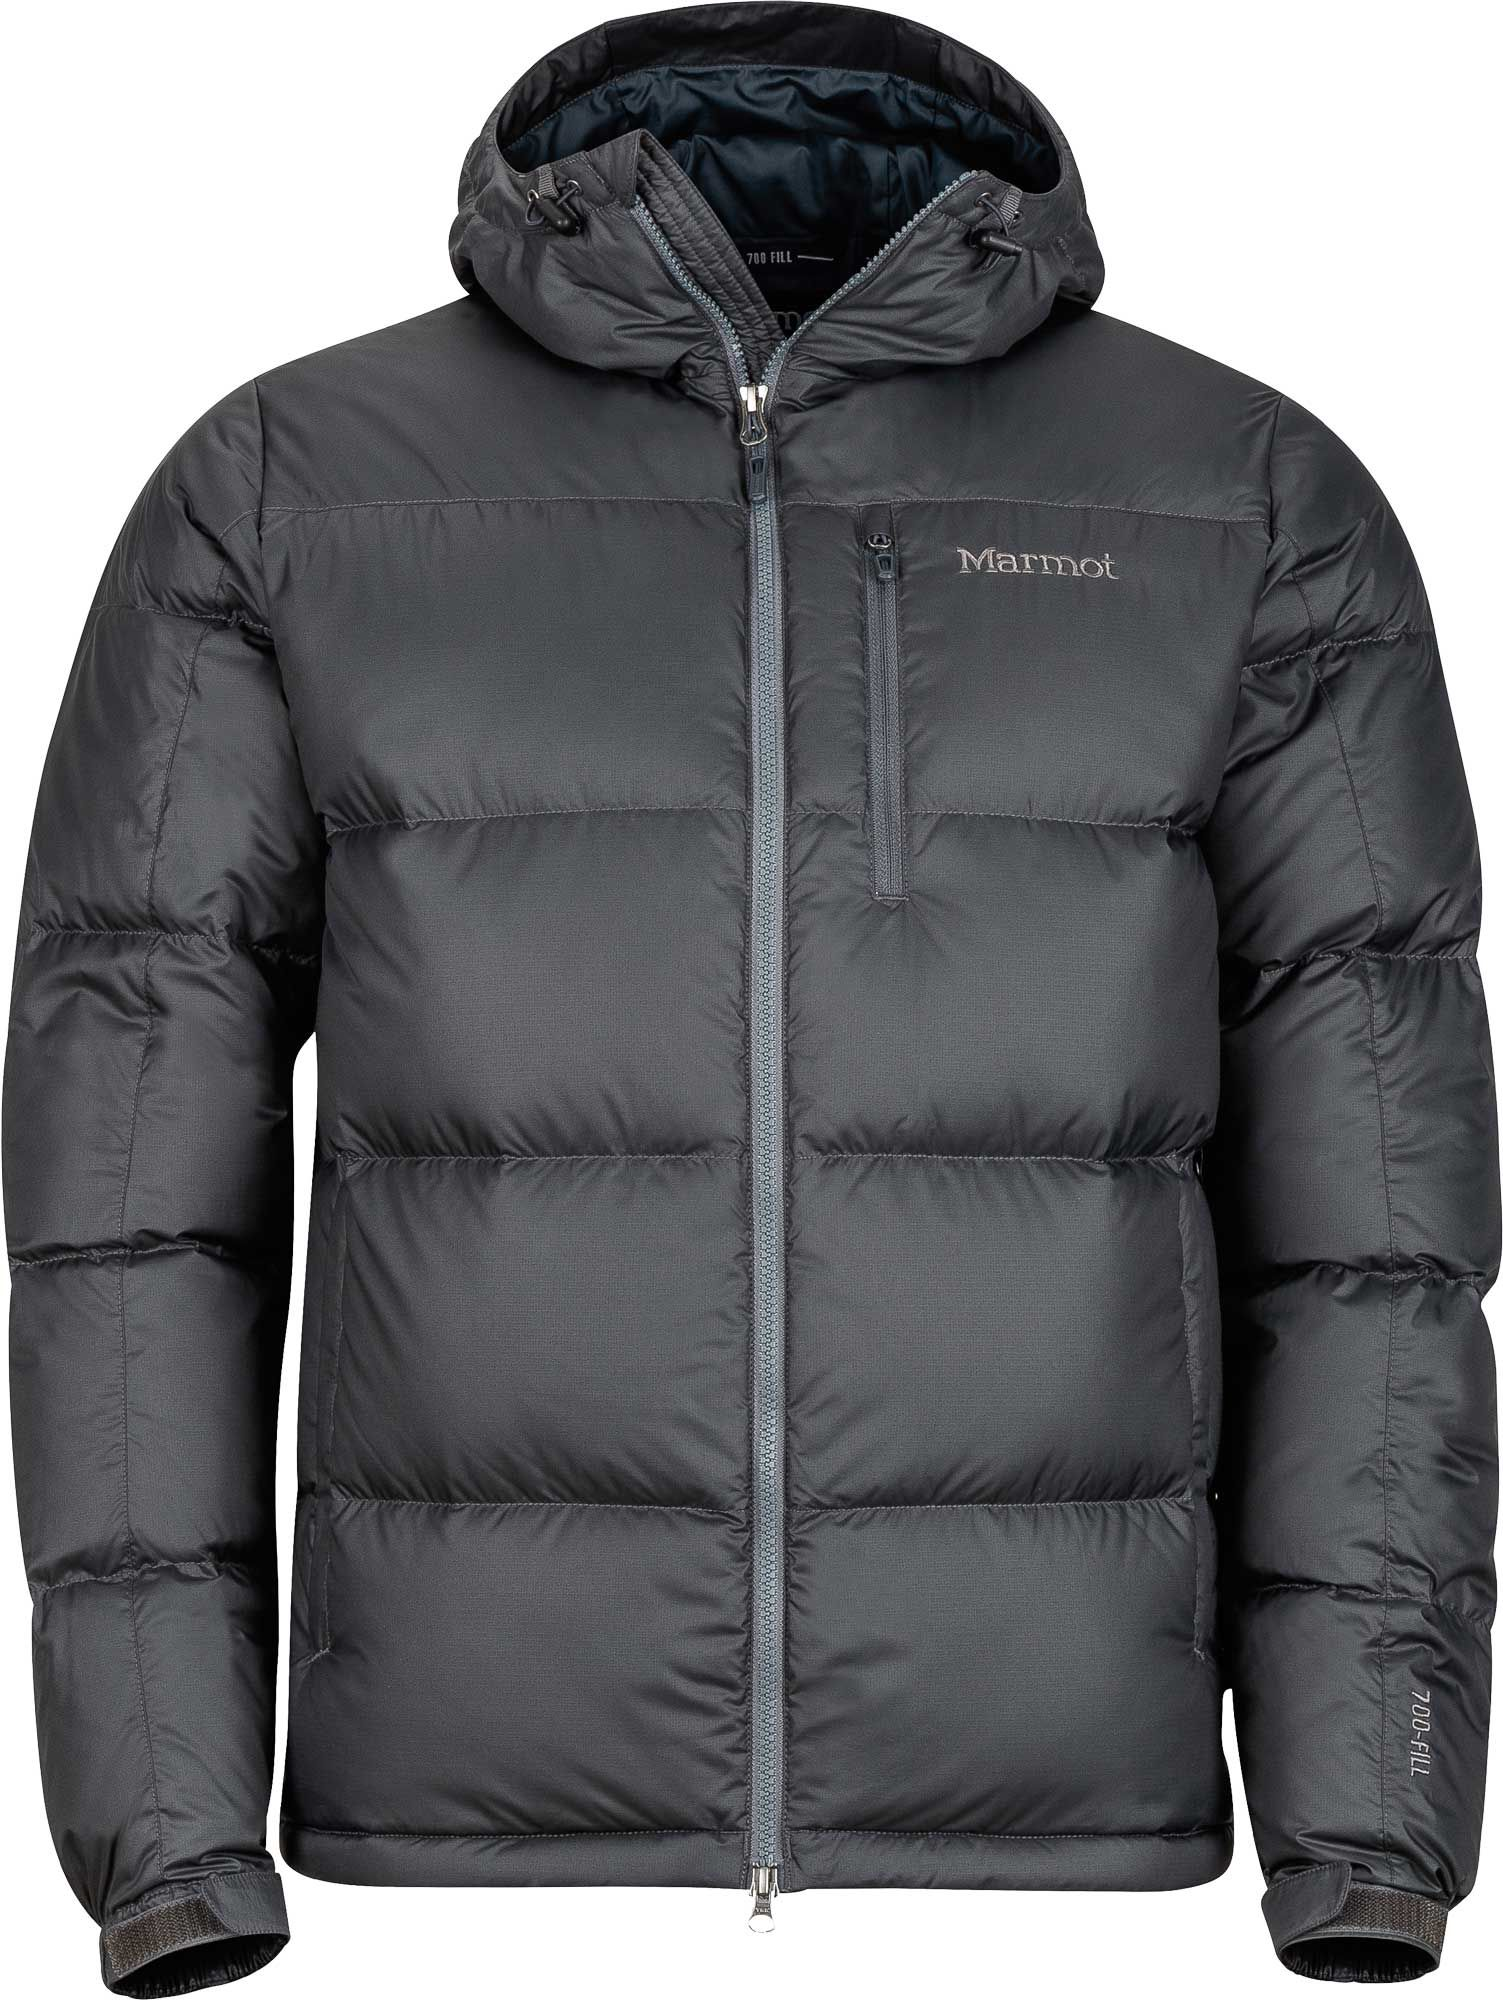 Men's Winter Coats Puffer & Quilted Jackets | DICK'S Sporting Goods : quilted winter jackets - Adamdwight.com